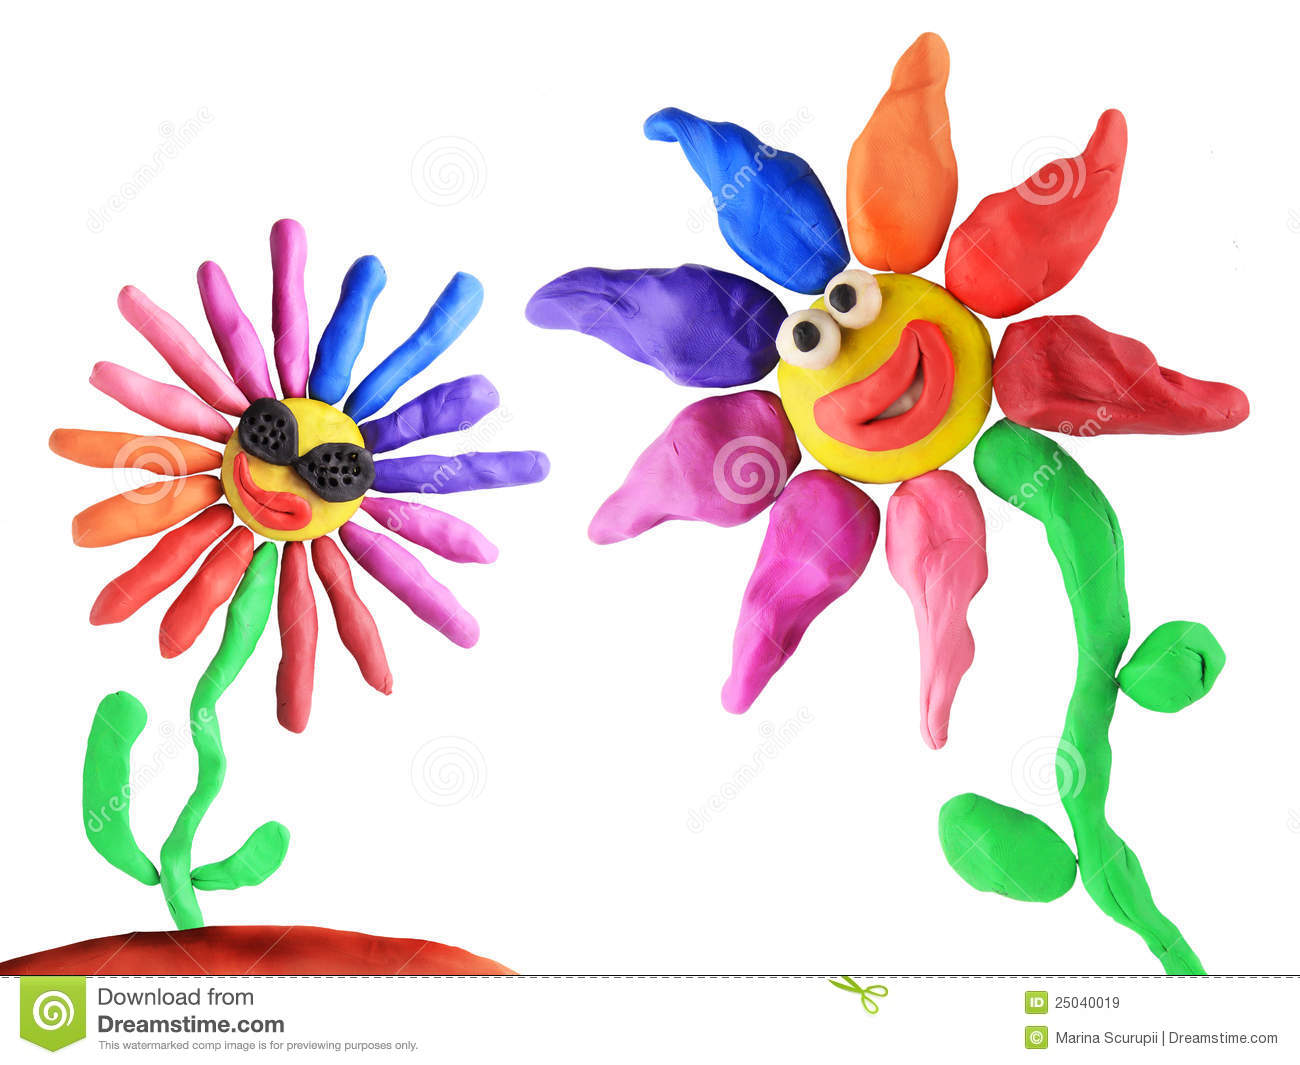 Plasticine flowers friendship royalty free stock images image 25040019 - Flowers that mean friendship ...